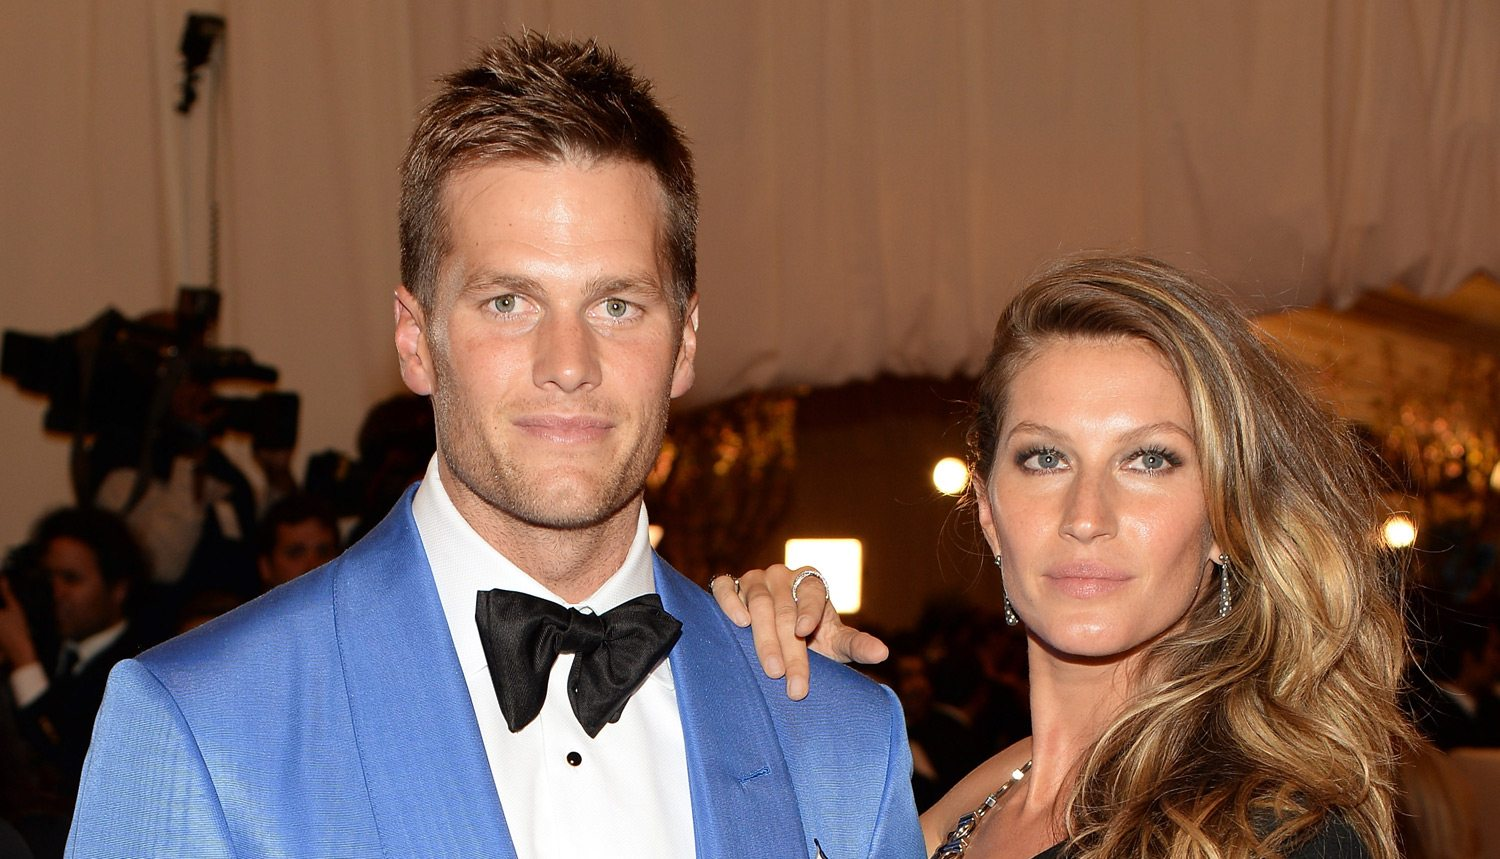 Tom Brady Family Pictures, Wife, Kids, Height, Worth